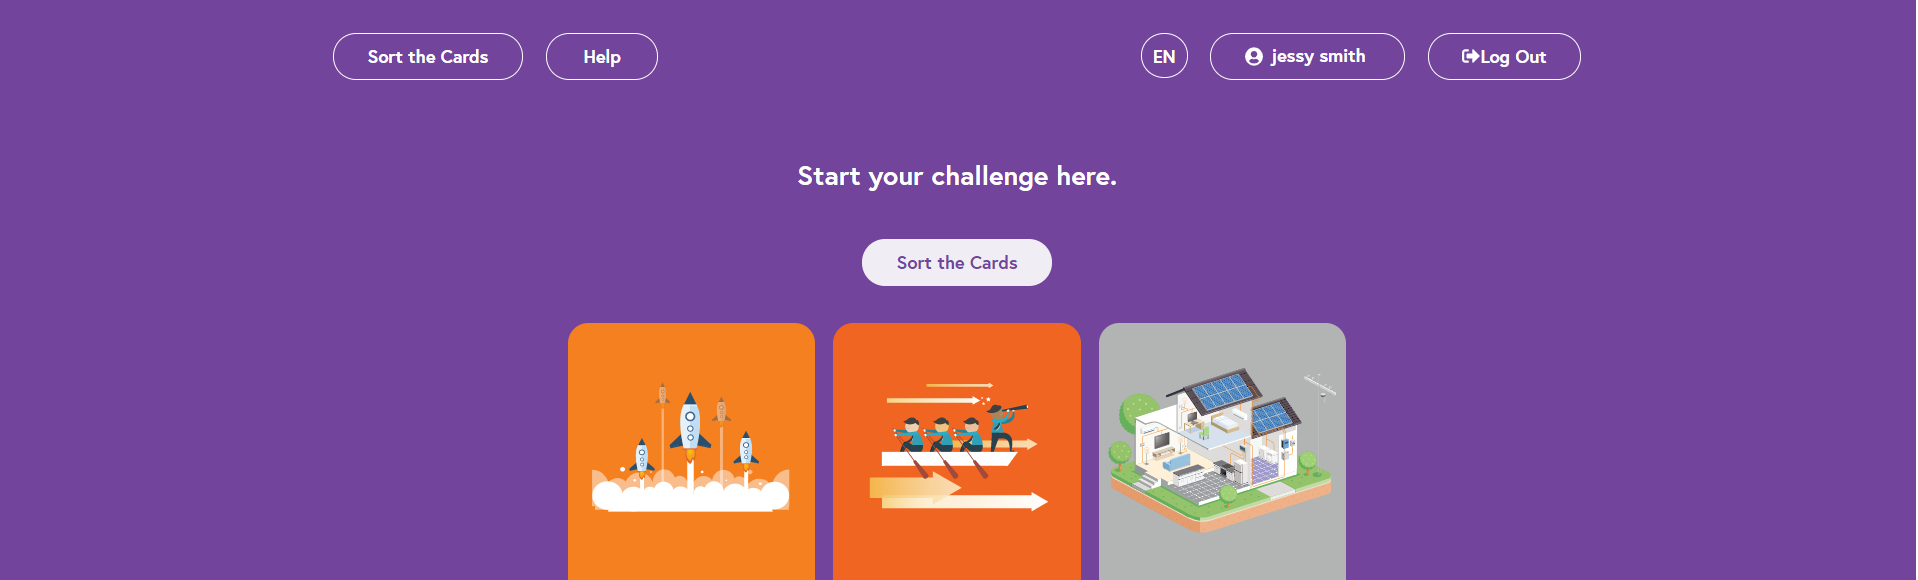 Try Out the Improved Look and Feel of the Digital Challenge Cards